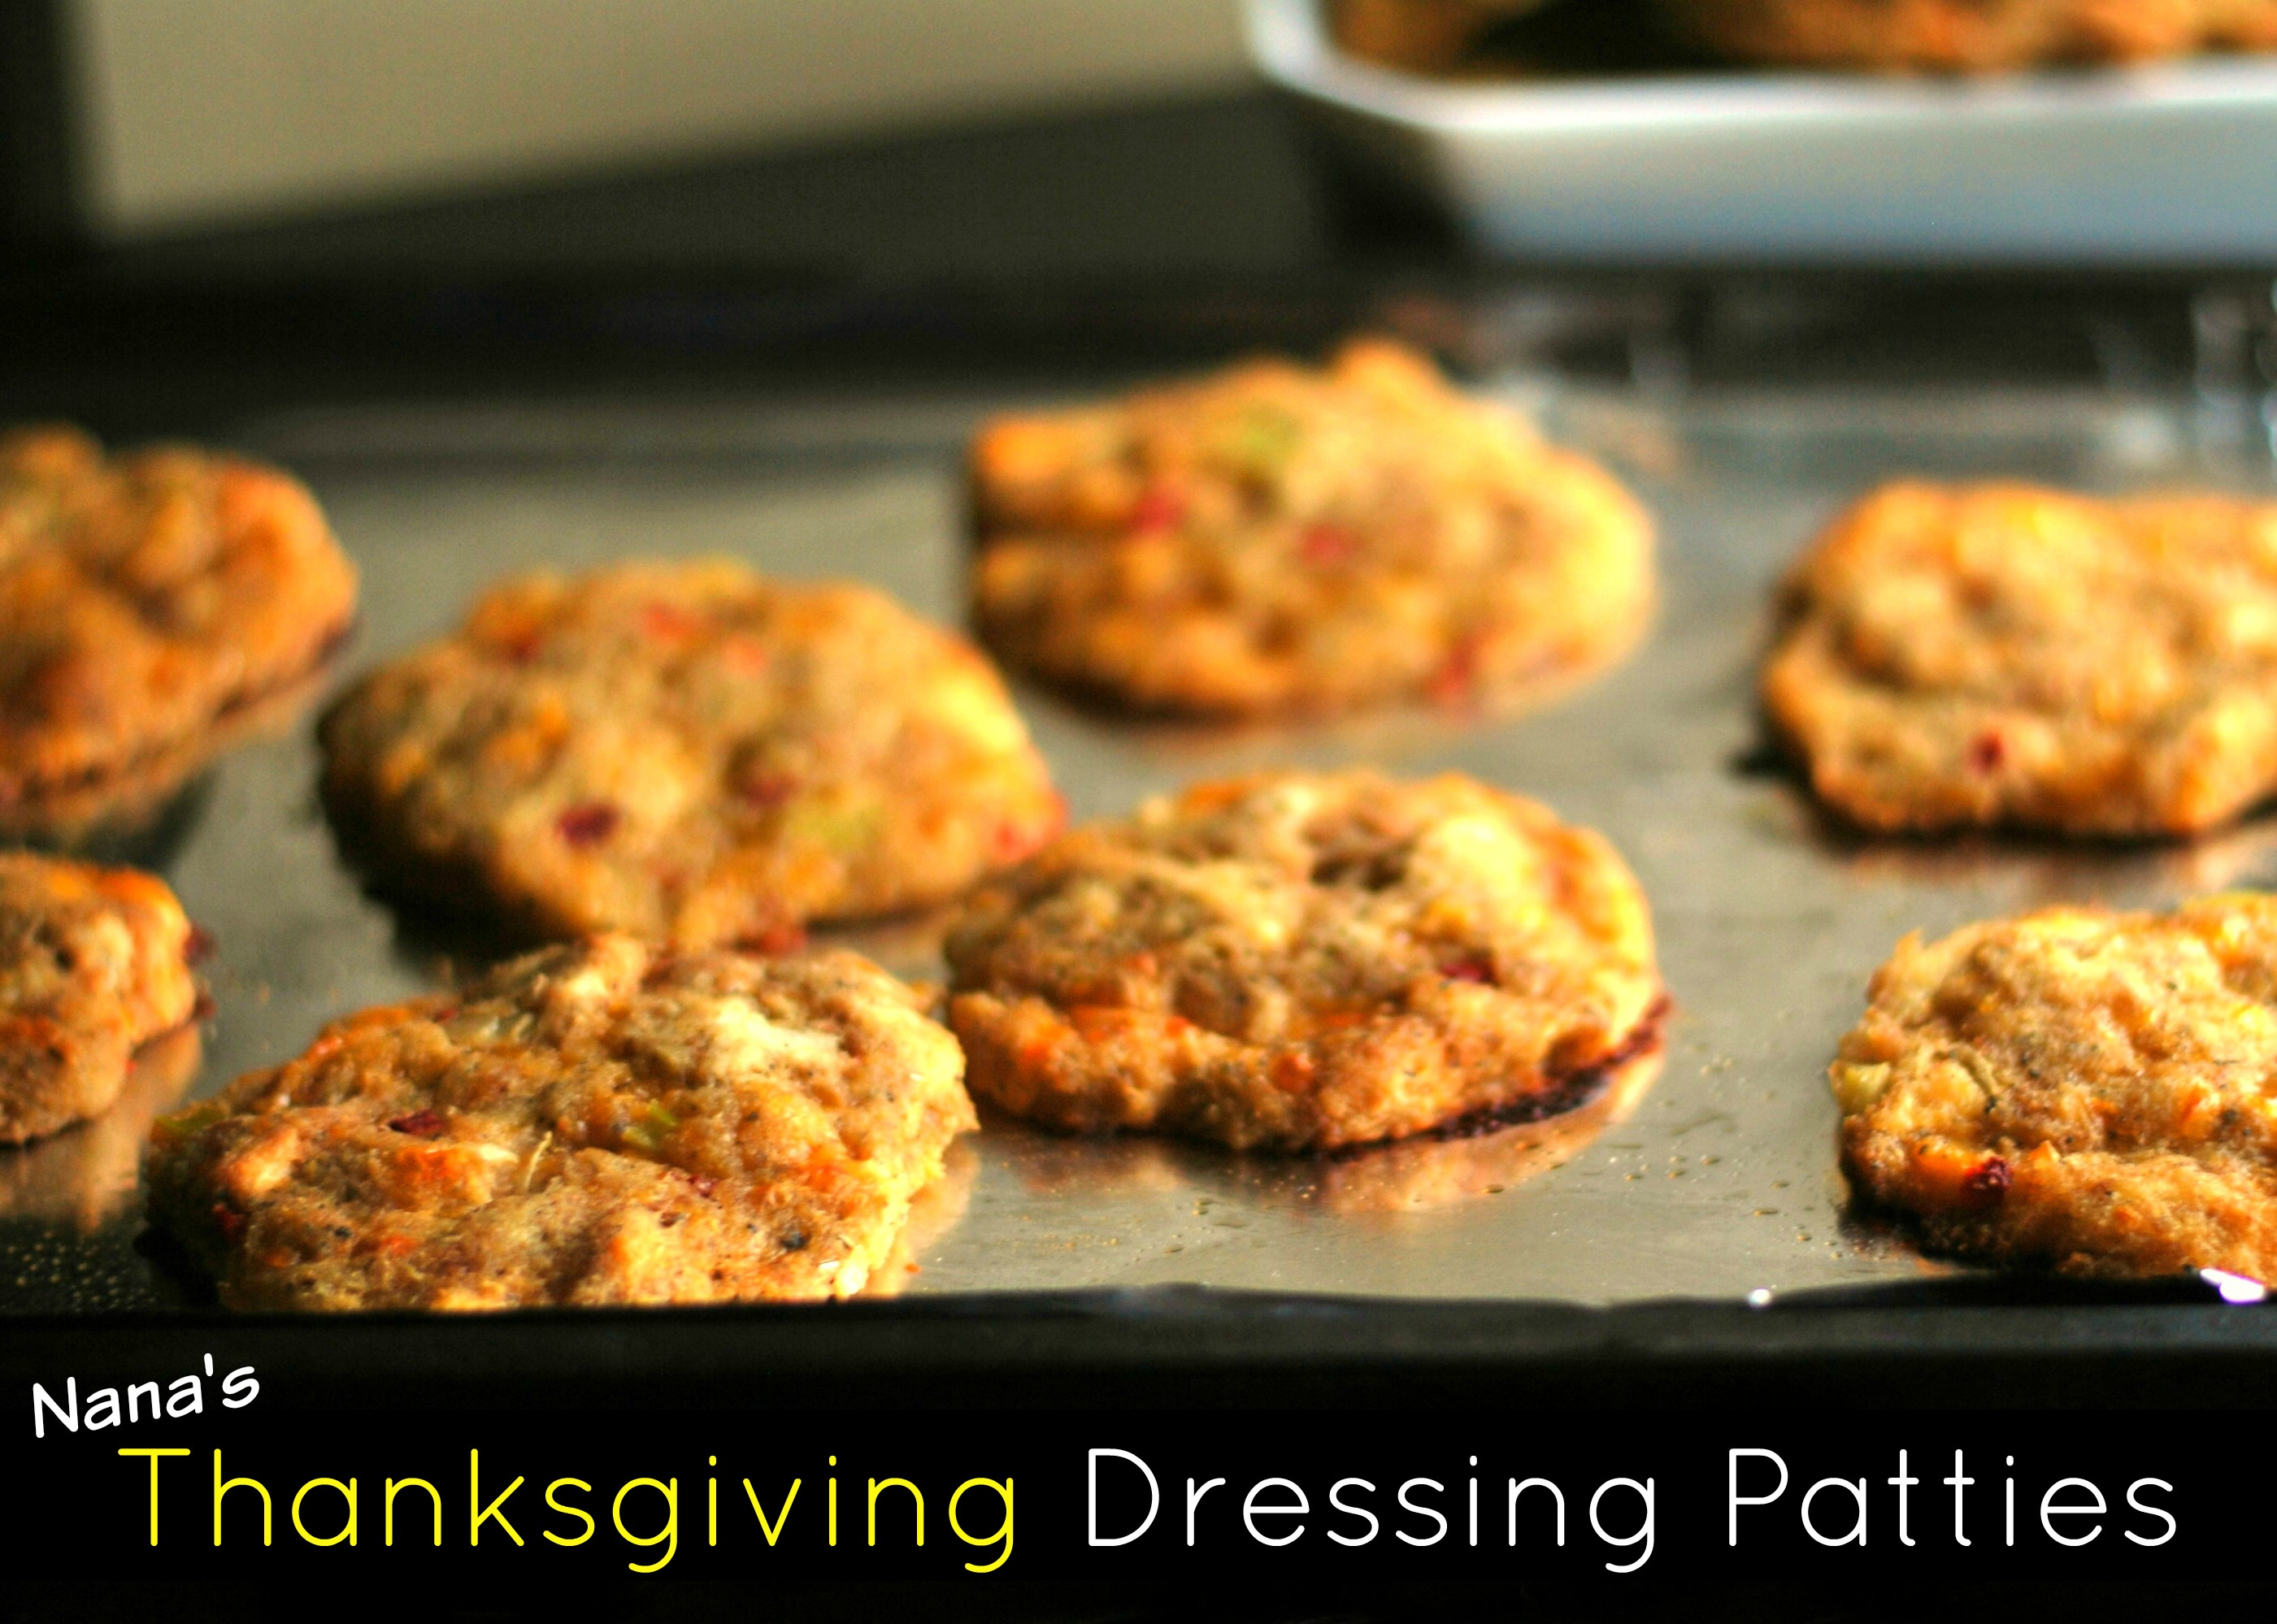 Nana's Dressing Patties